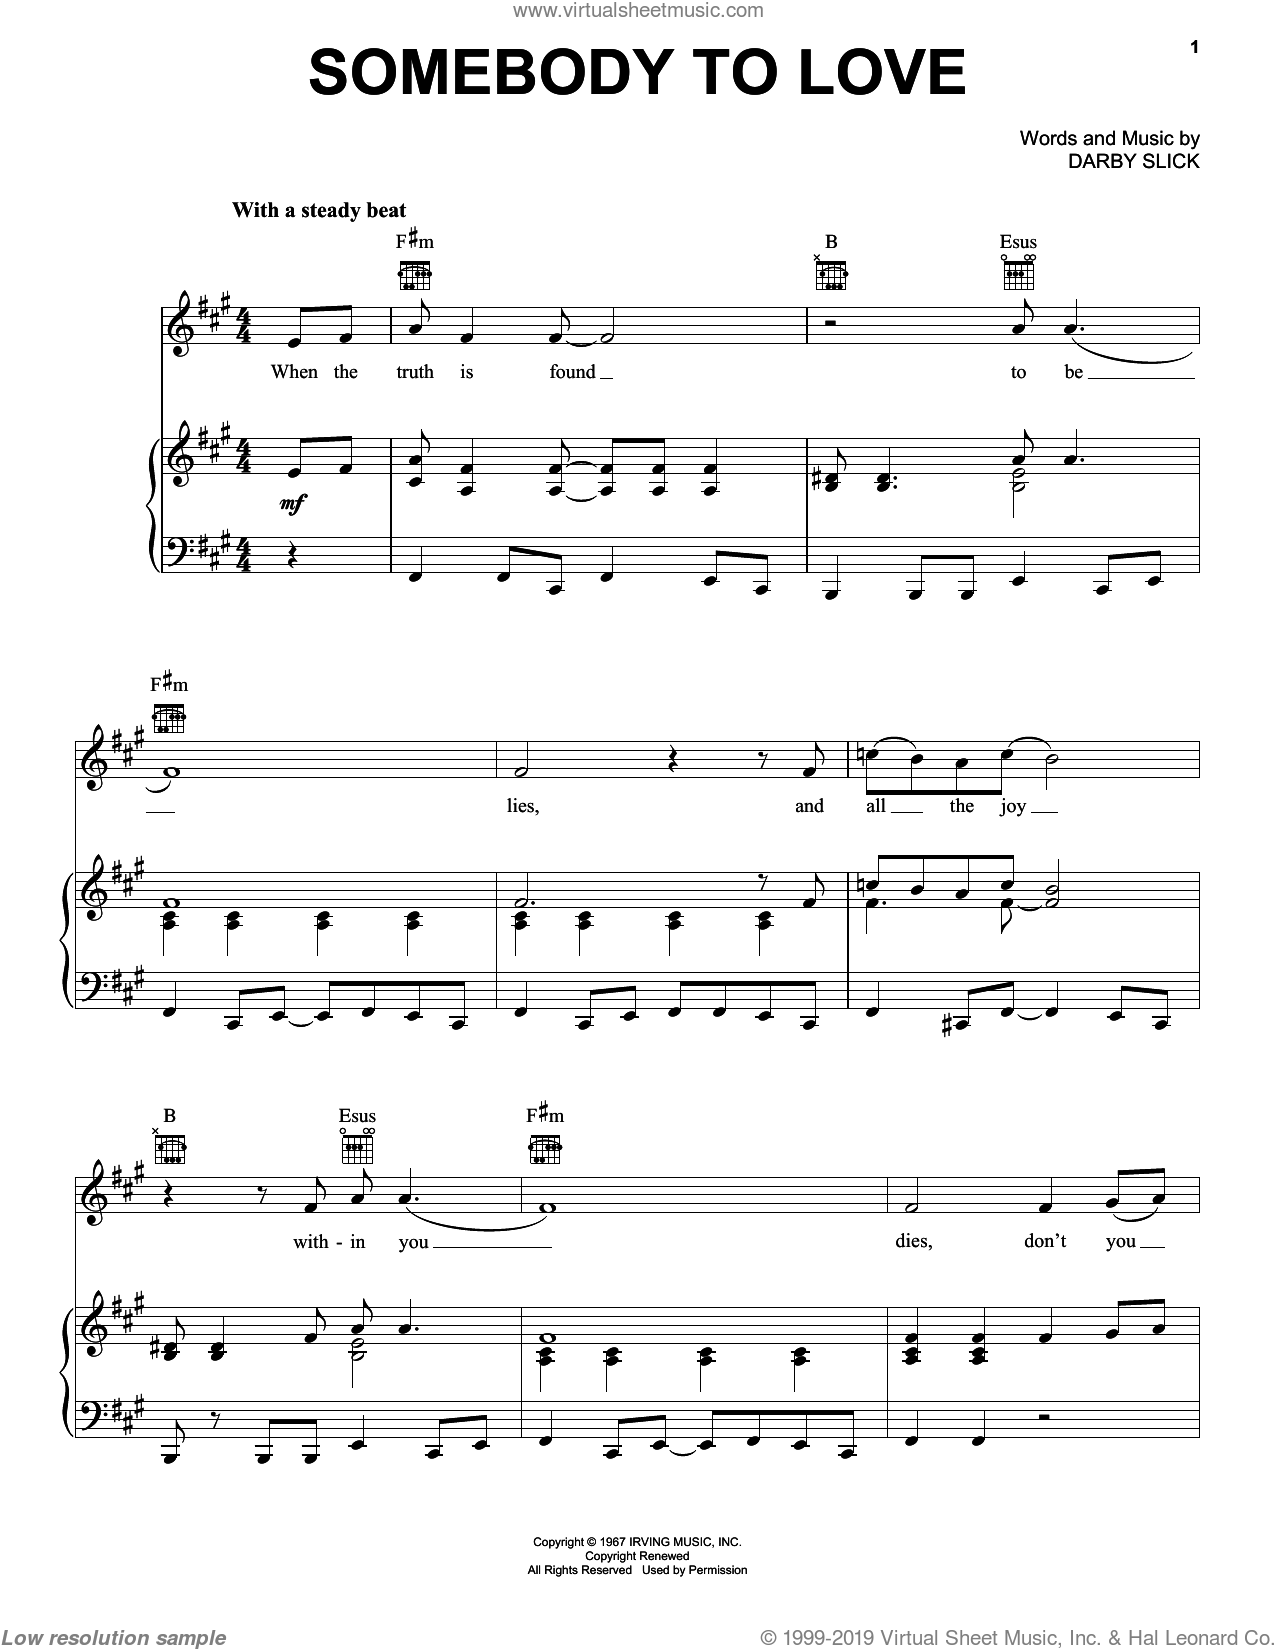 Somebody To Love sheet music for voice, piano or guitar by Darby Slick and Jefferson Airplane. Score Image Preview.